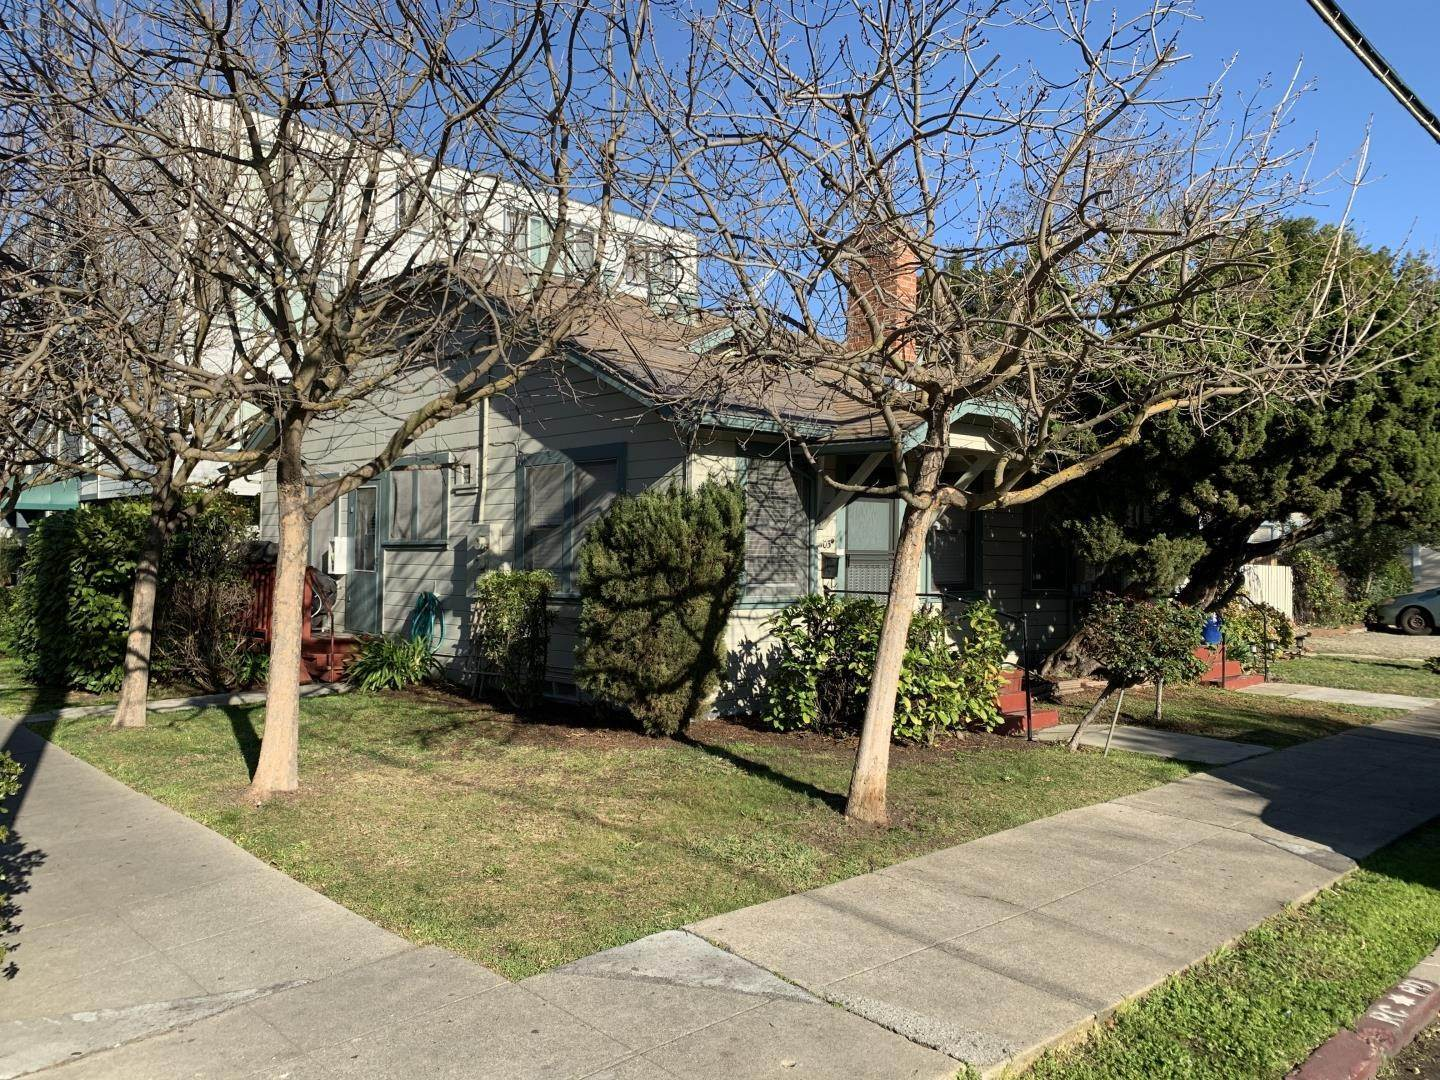 Property for Sale at 703 Adams Street Redwood City, California 94061 United States